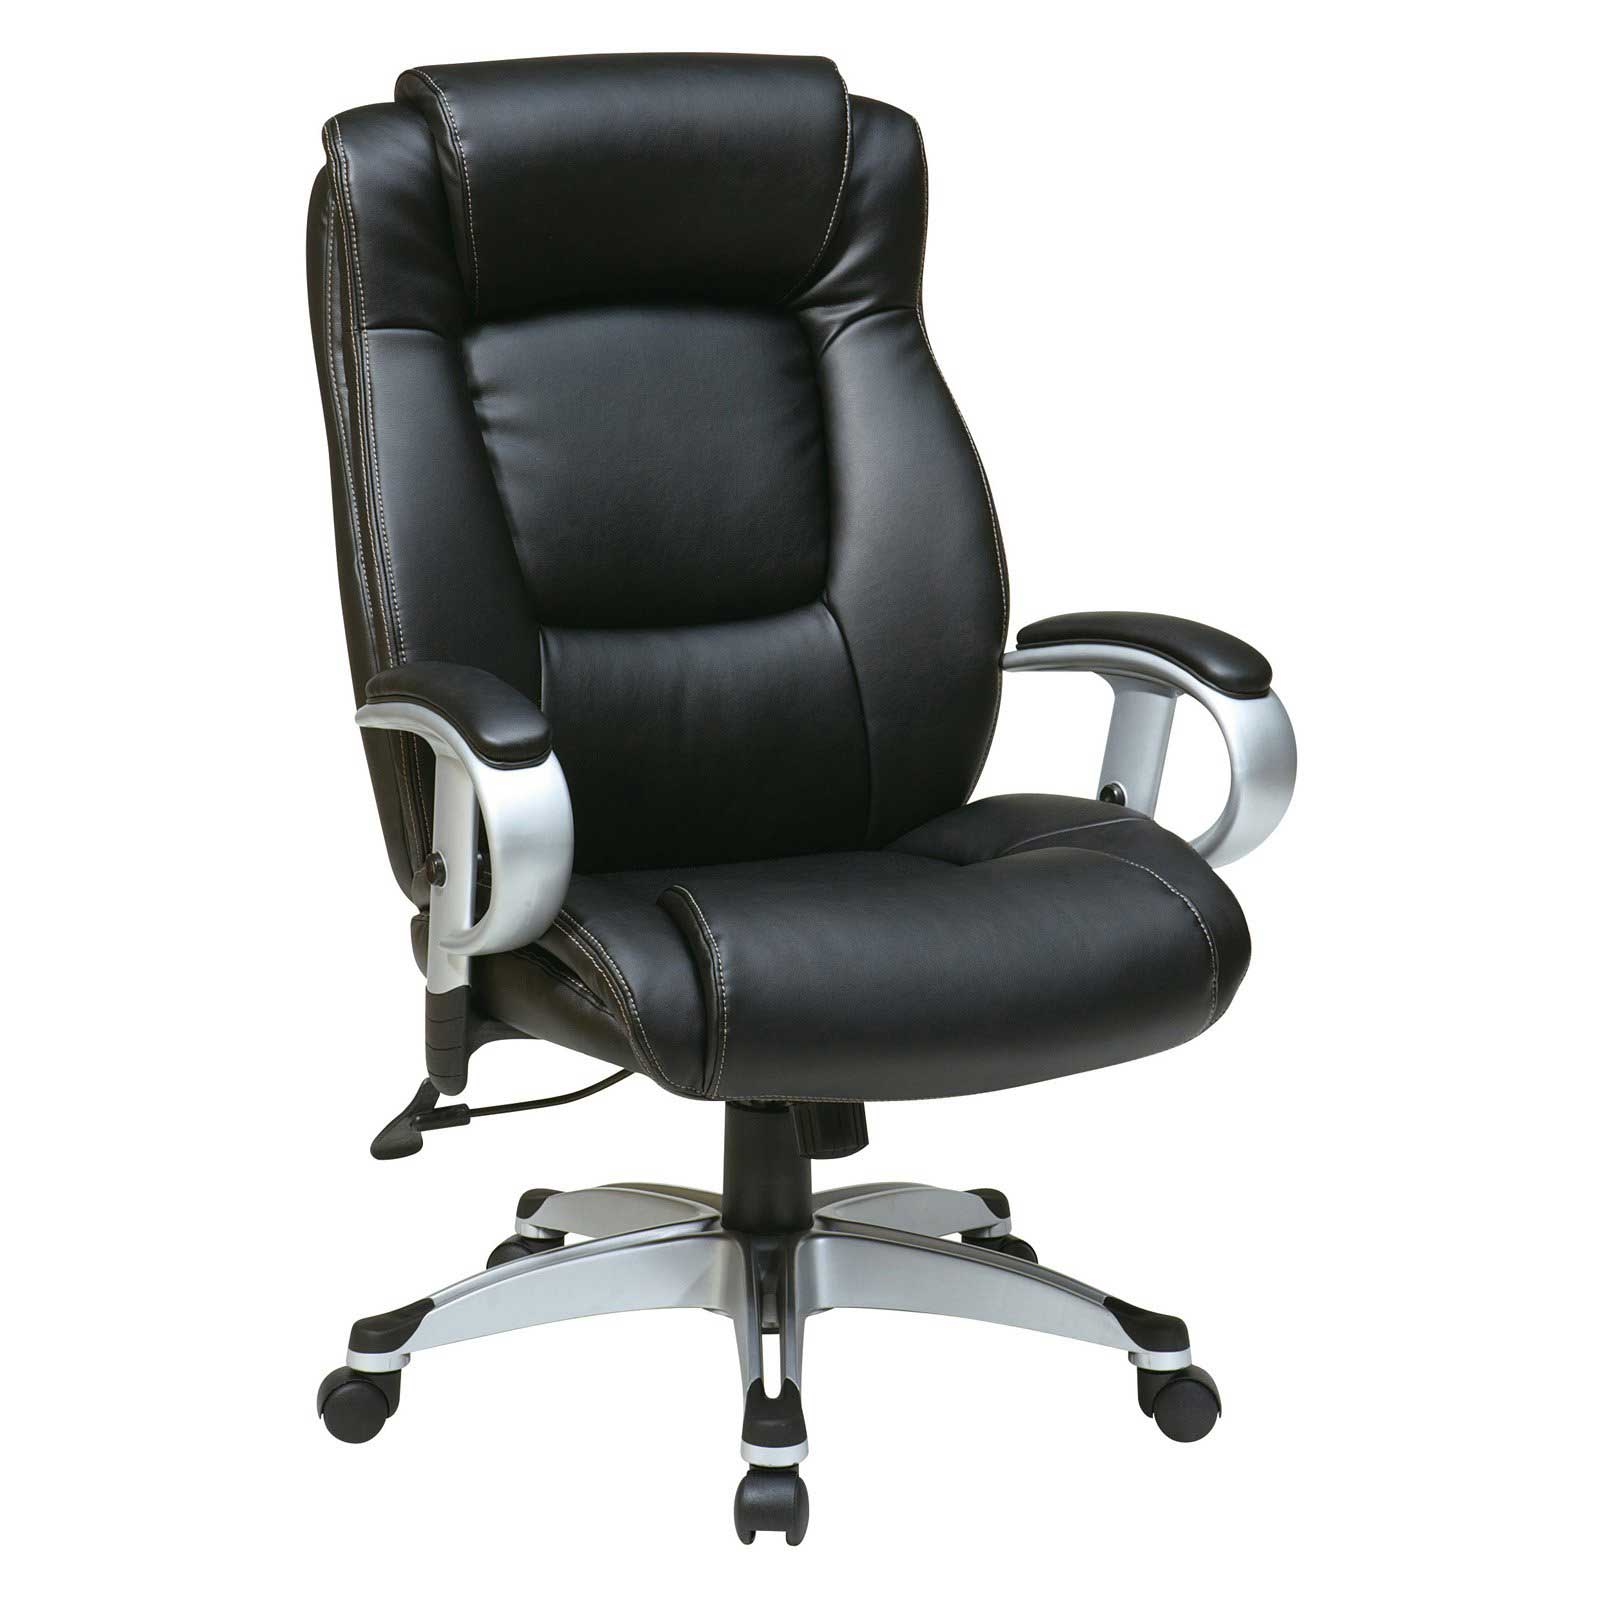 Office Star Leather Seating with Adjustable Arms and Height